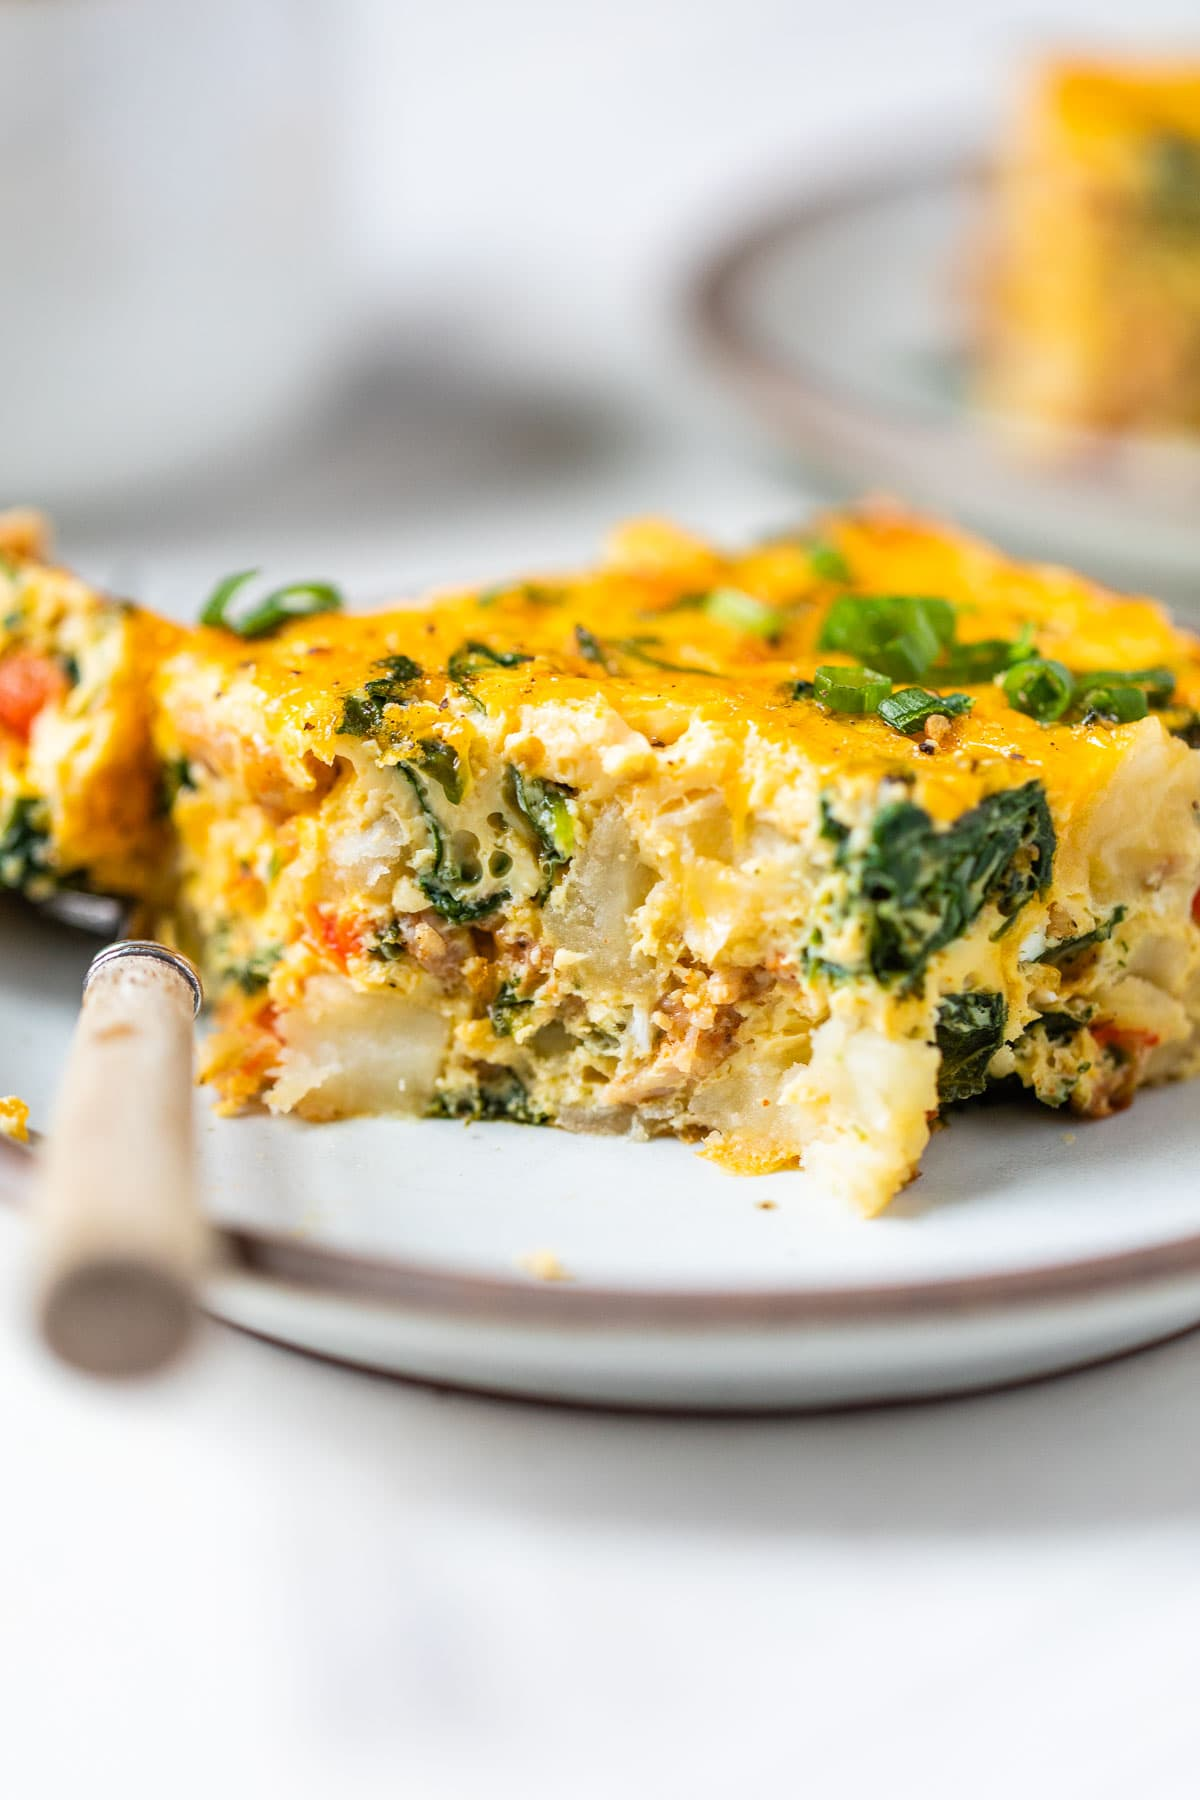 Healthy breakfast casserole on a plate